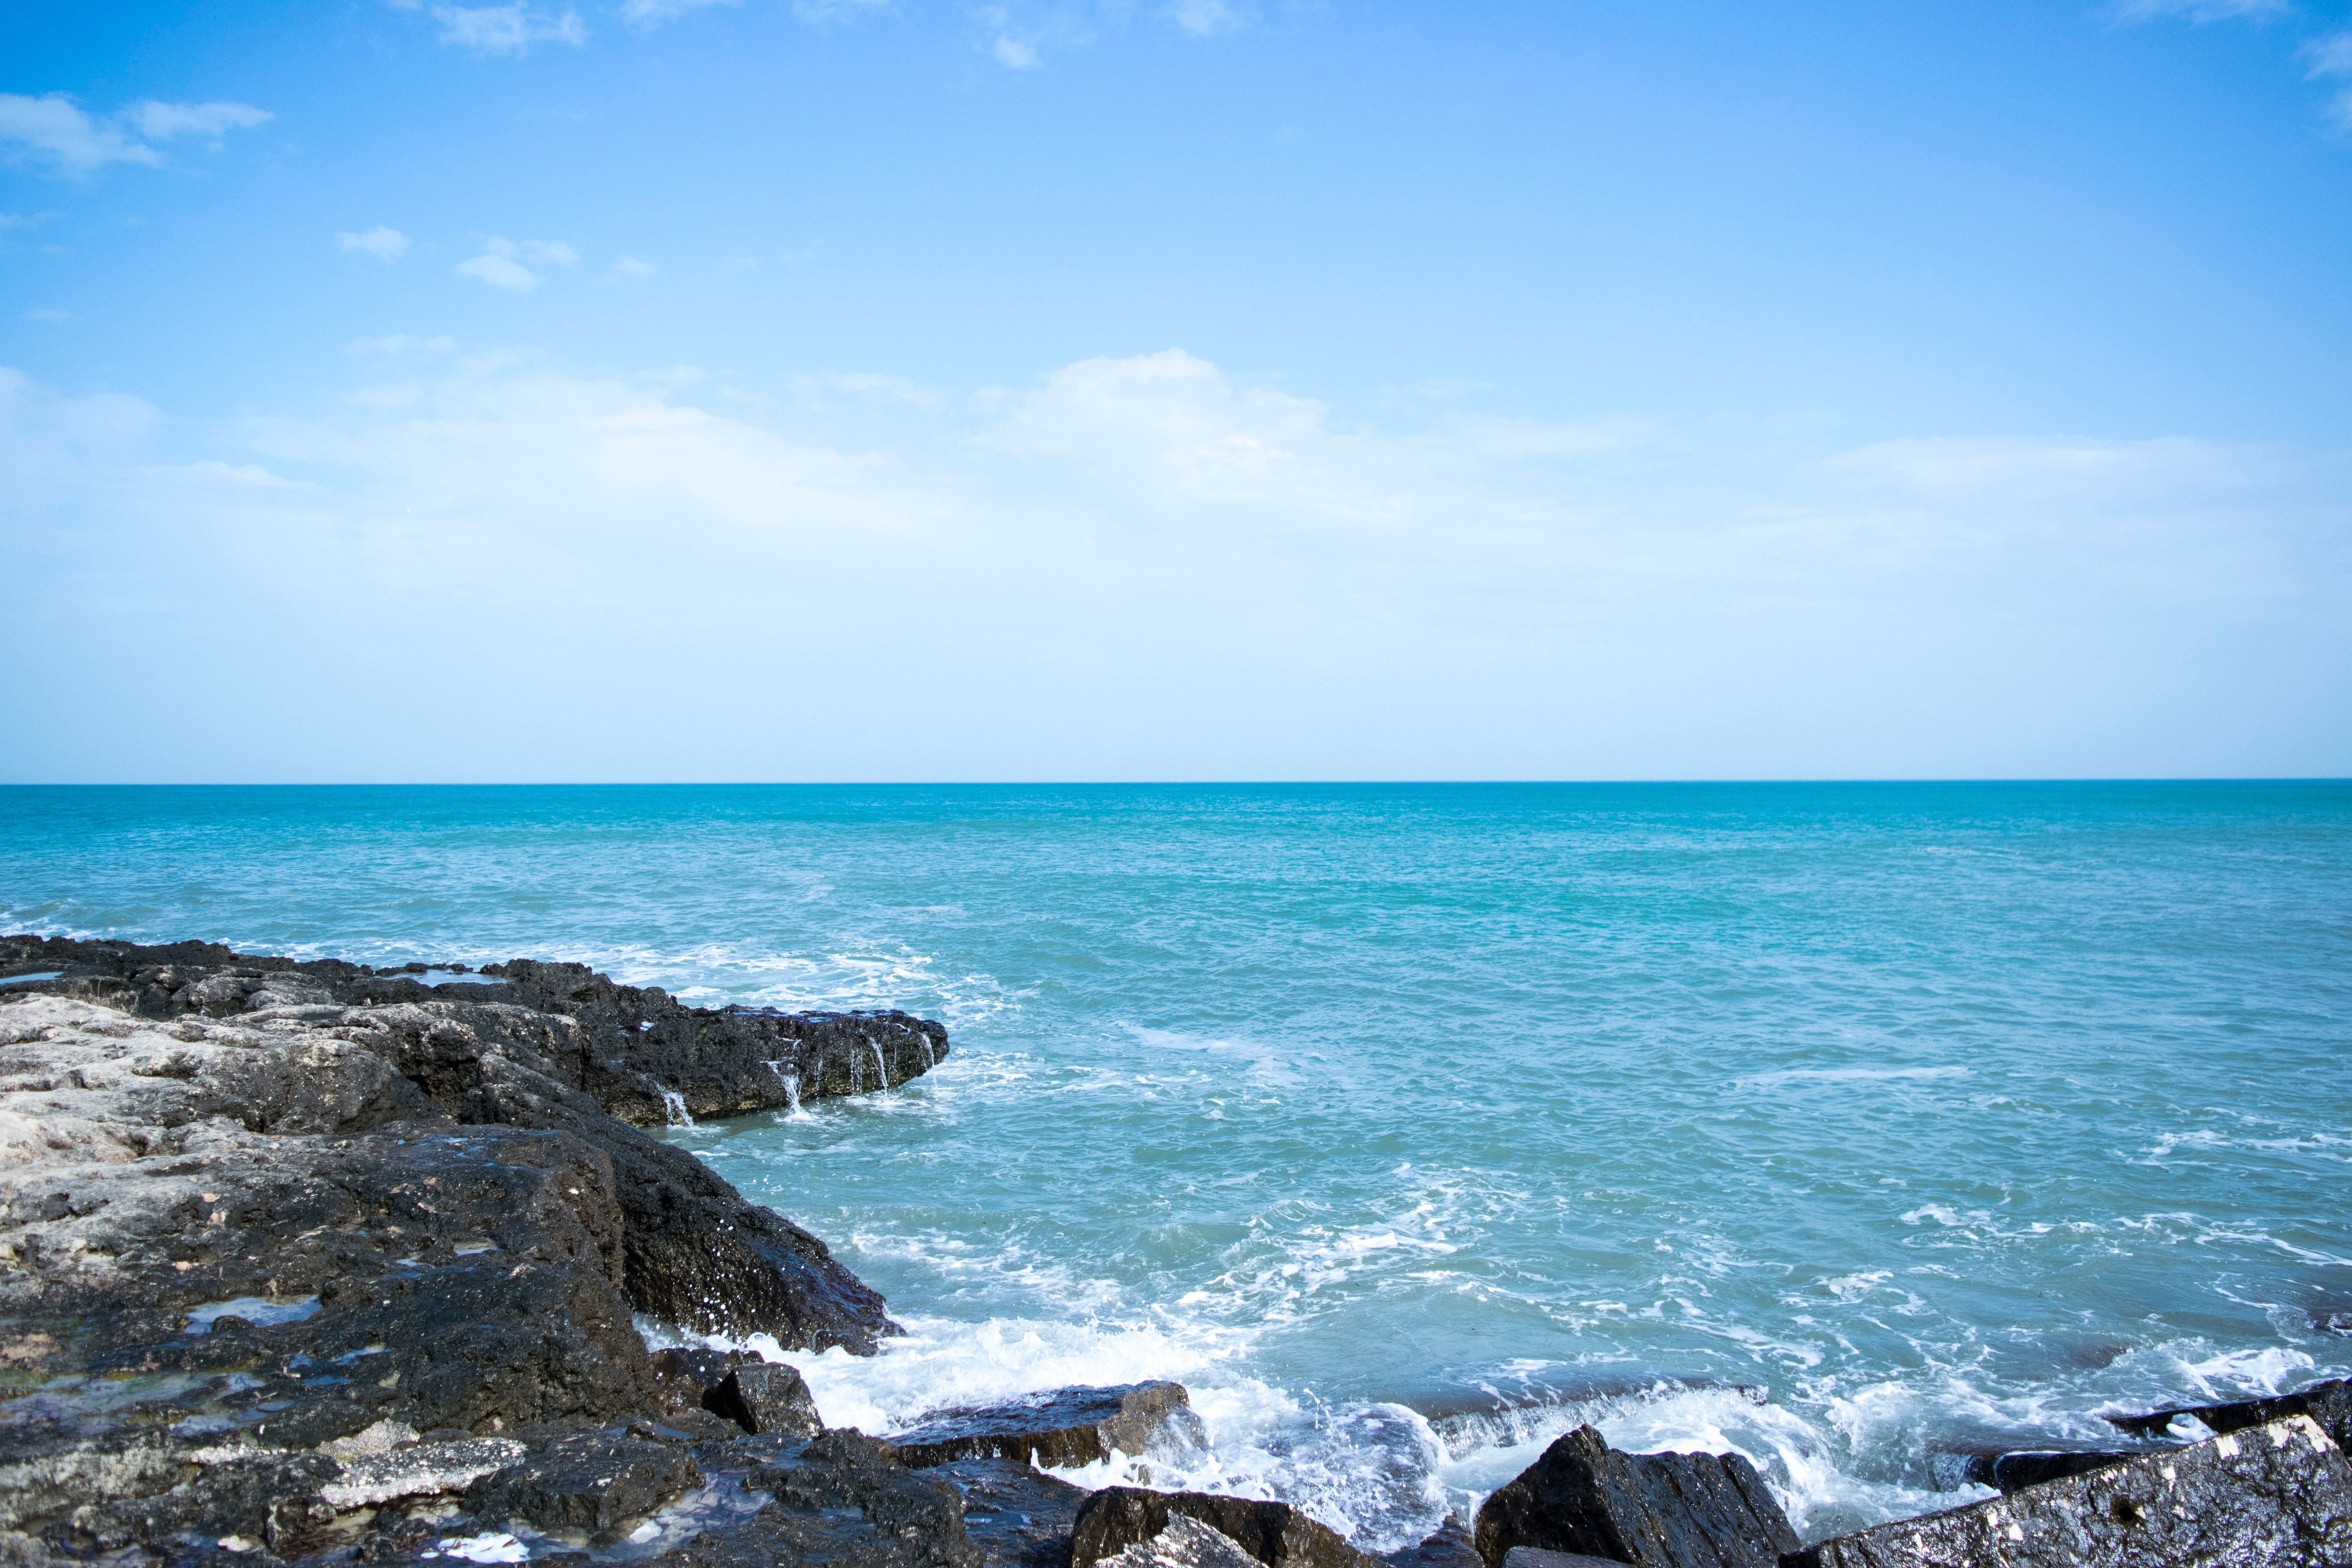 Ocean View With Black Rock Formation, Blue, Sea, Water, Splash, HQ Photo